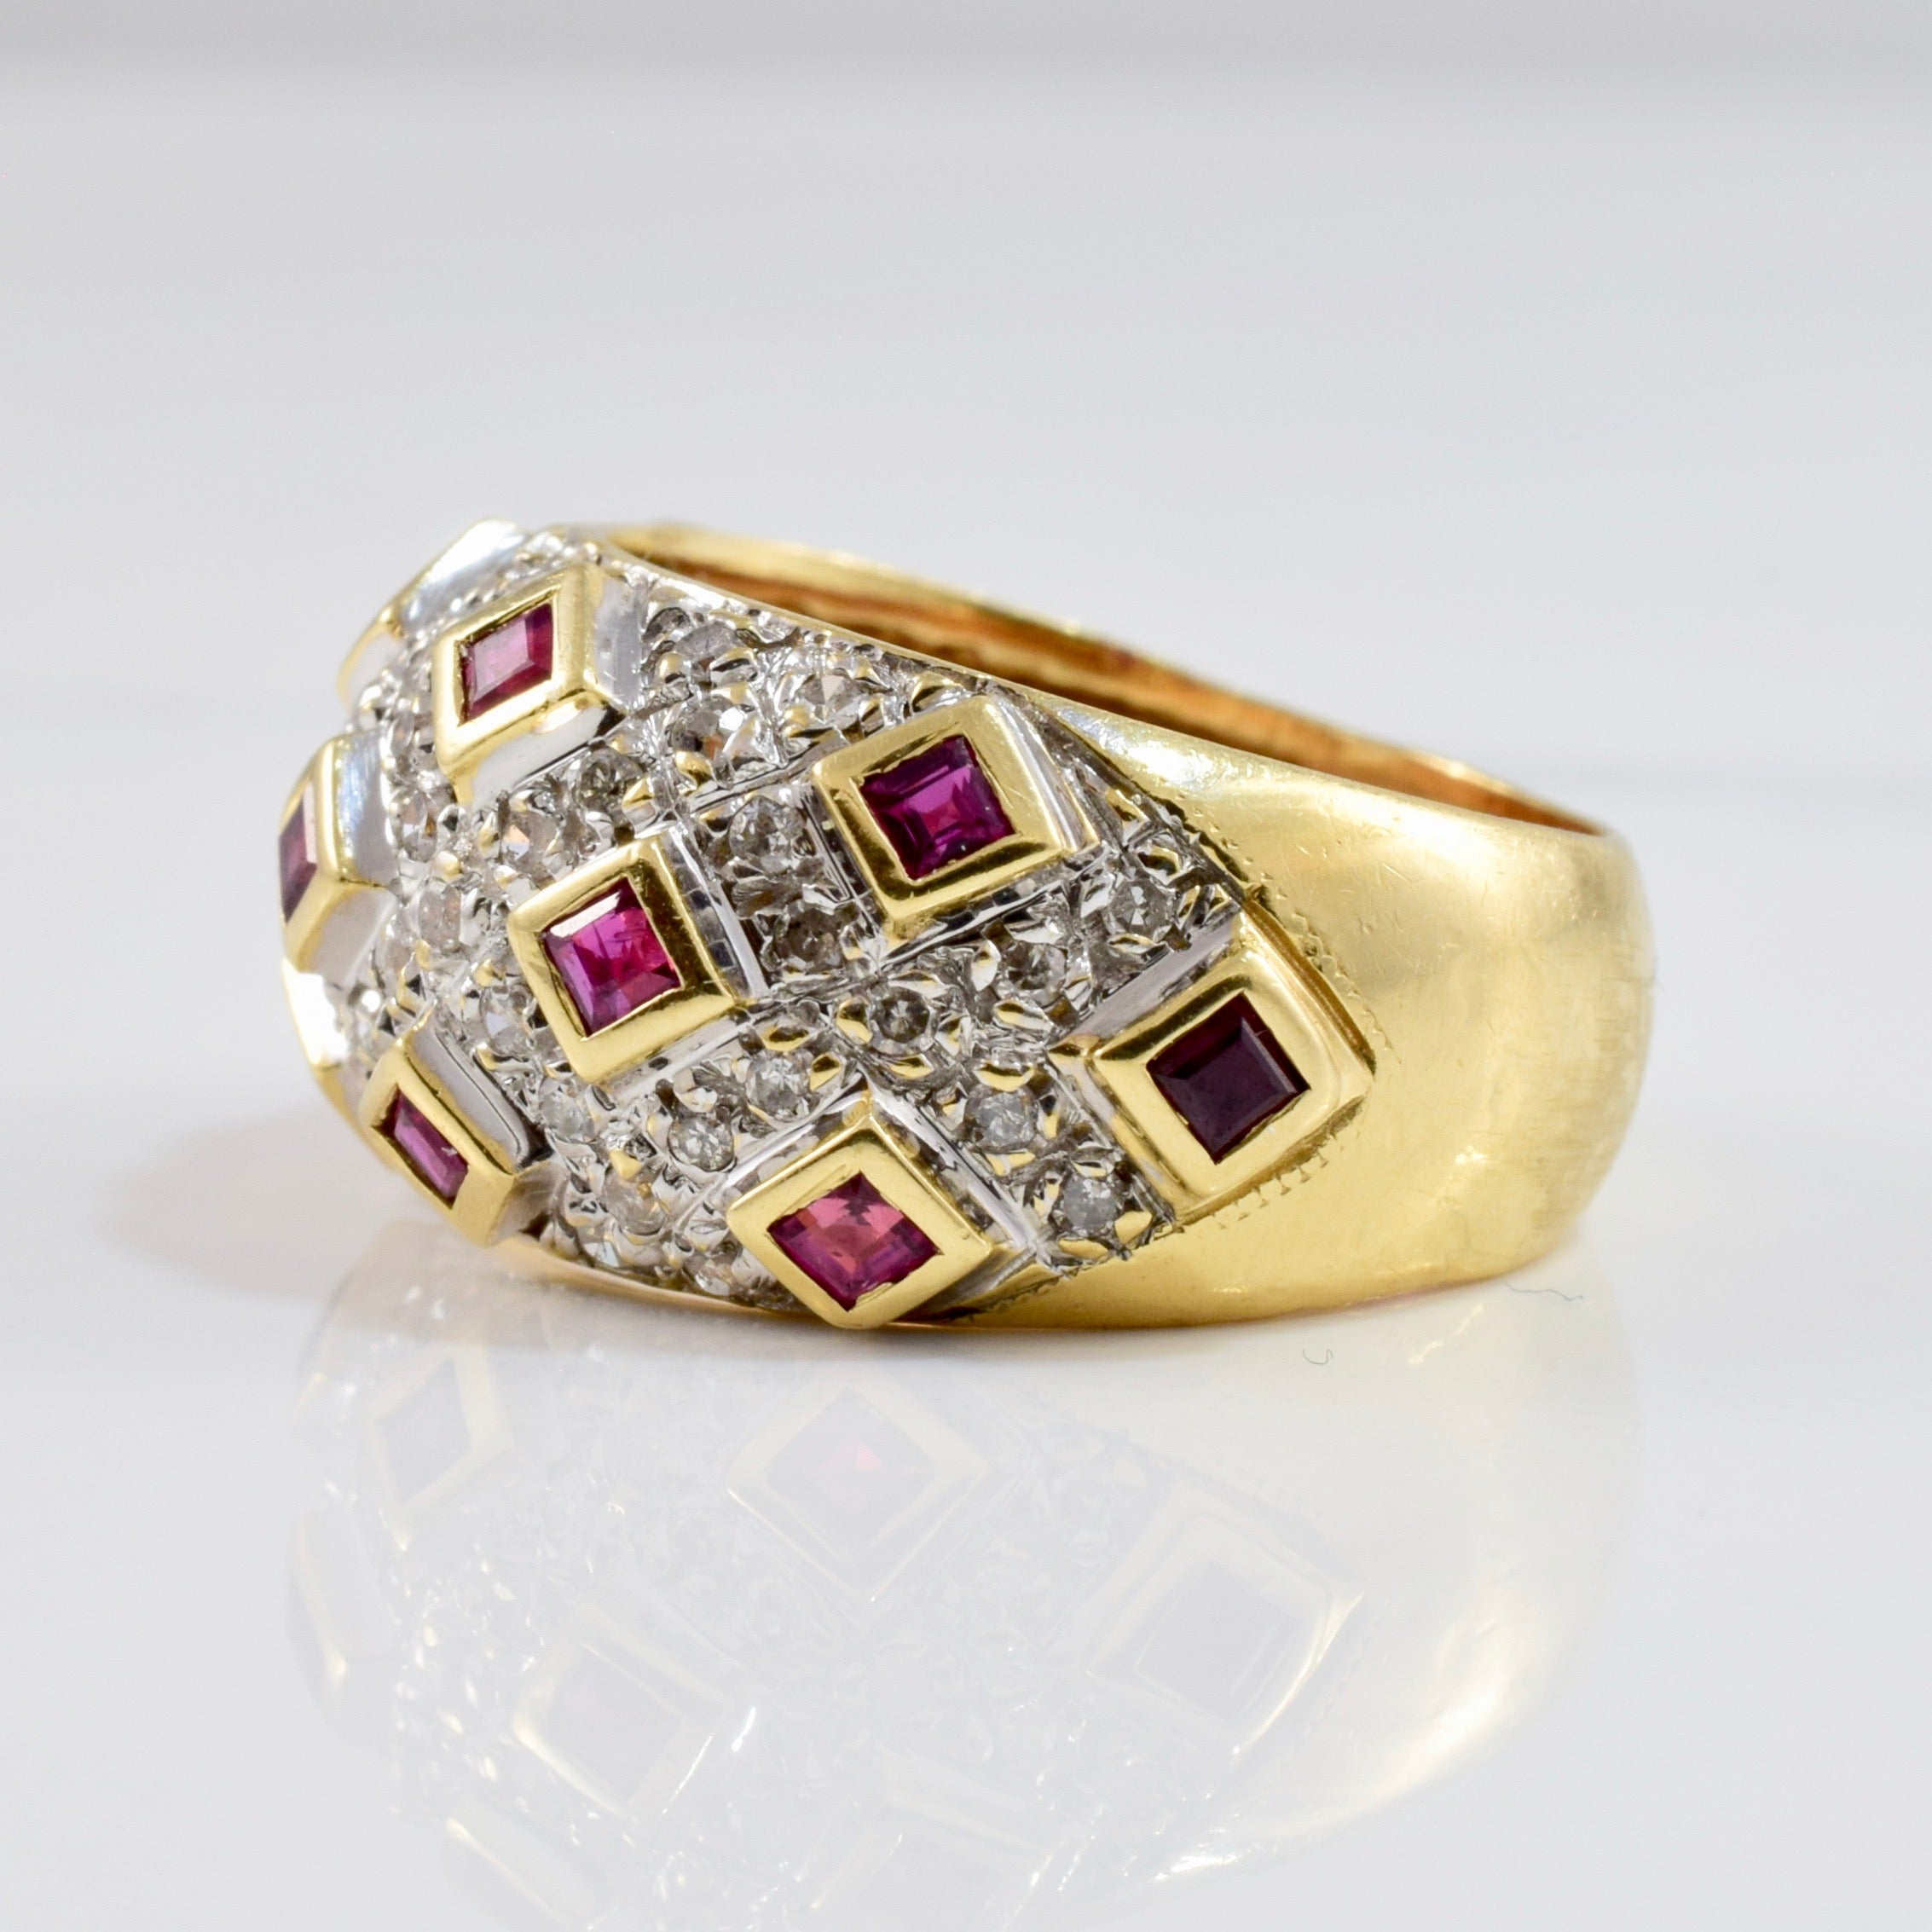 Diamond Cluster and Bezel Set Ruby Ring | 0.27 ctw SZ 6.25 |